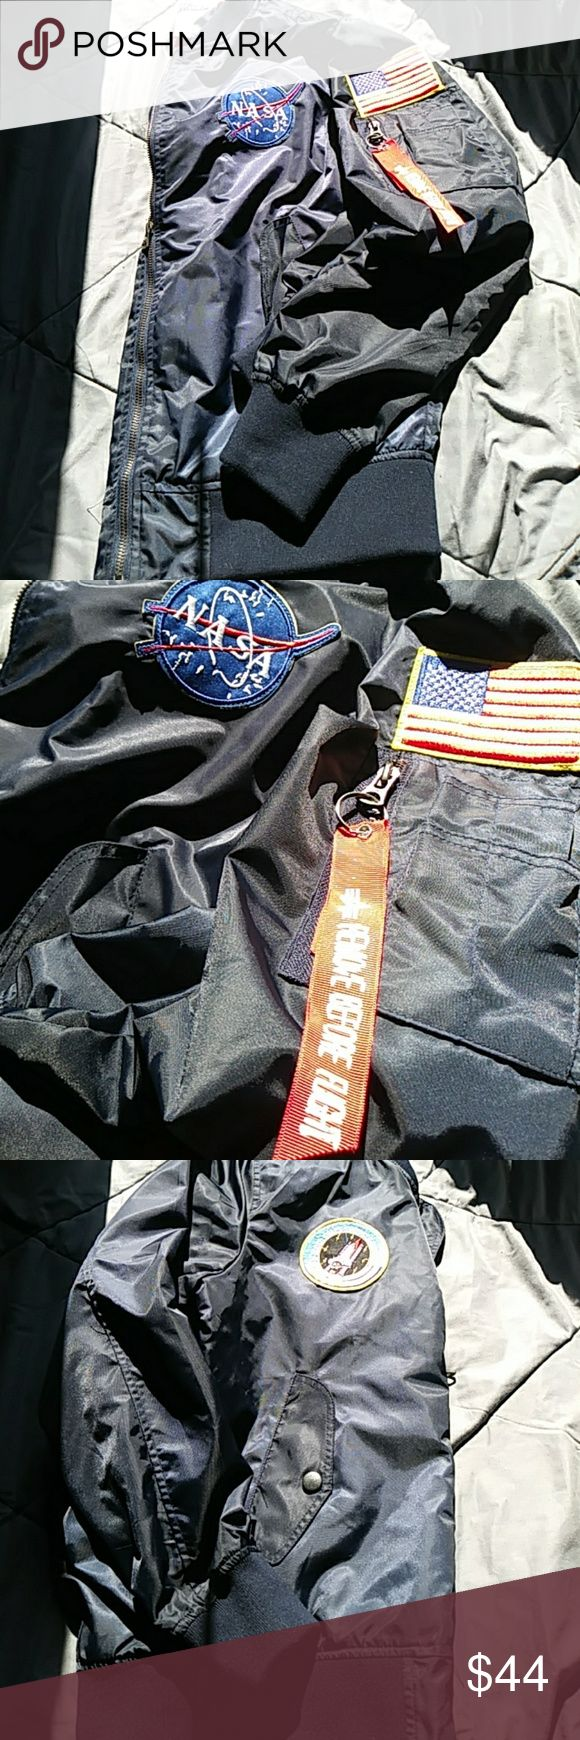 nasa patches on sleeve - photo #34